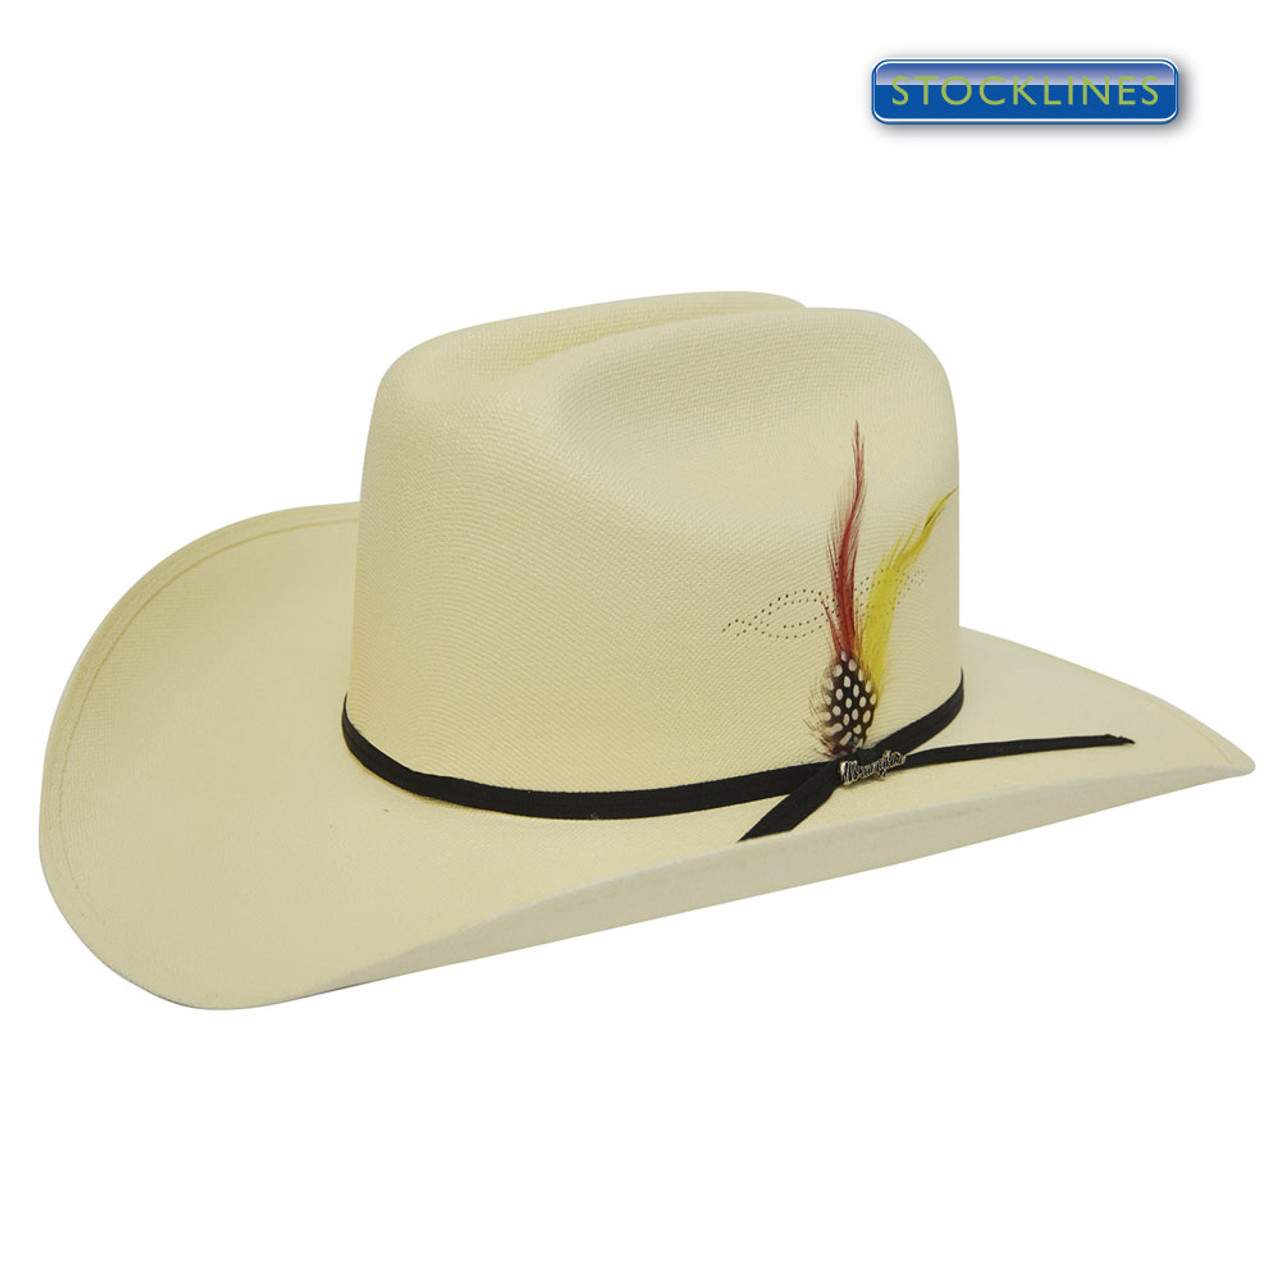 c5ebd47dbc8 Wrangler Western Kids Dallas Cotton Canvas Western Hat in Bone (XCP3905HAT)